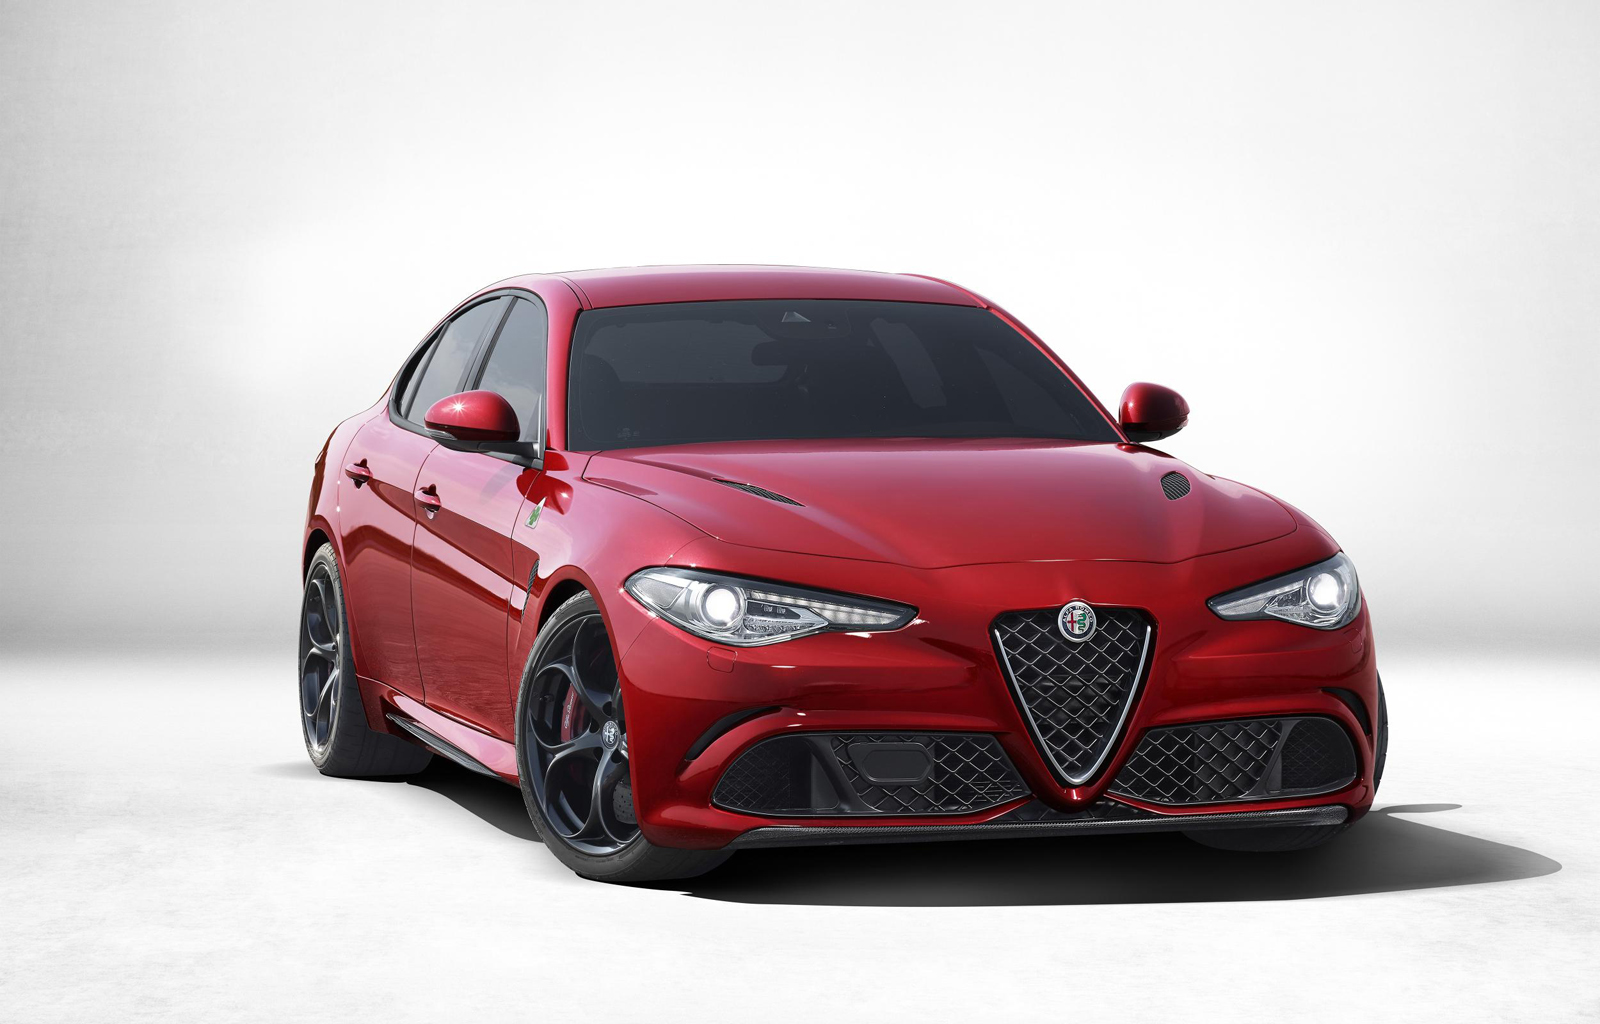 2017 alfa romeo giulia debuts with ferrari power. Black Bedroom Furniture Sets. Home Design Ideas